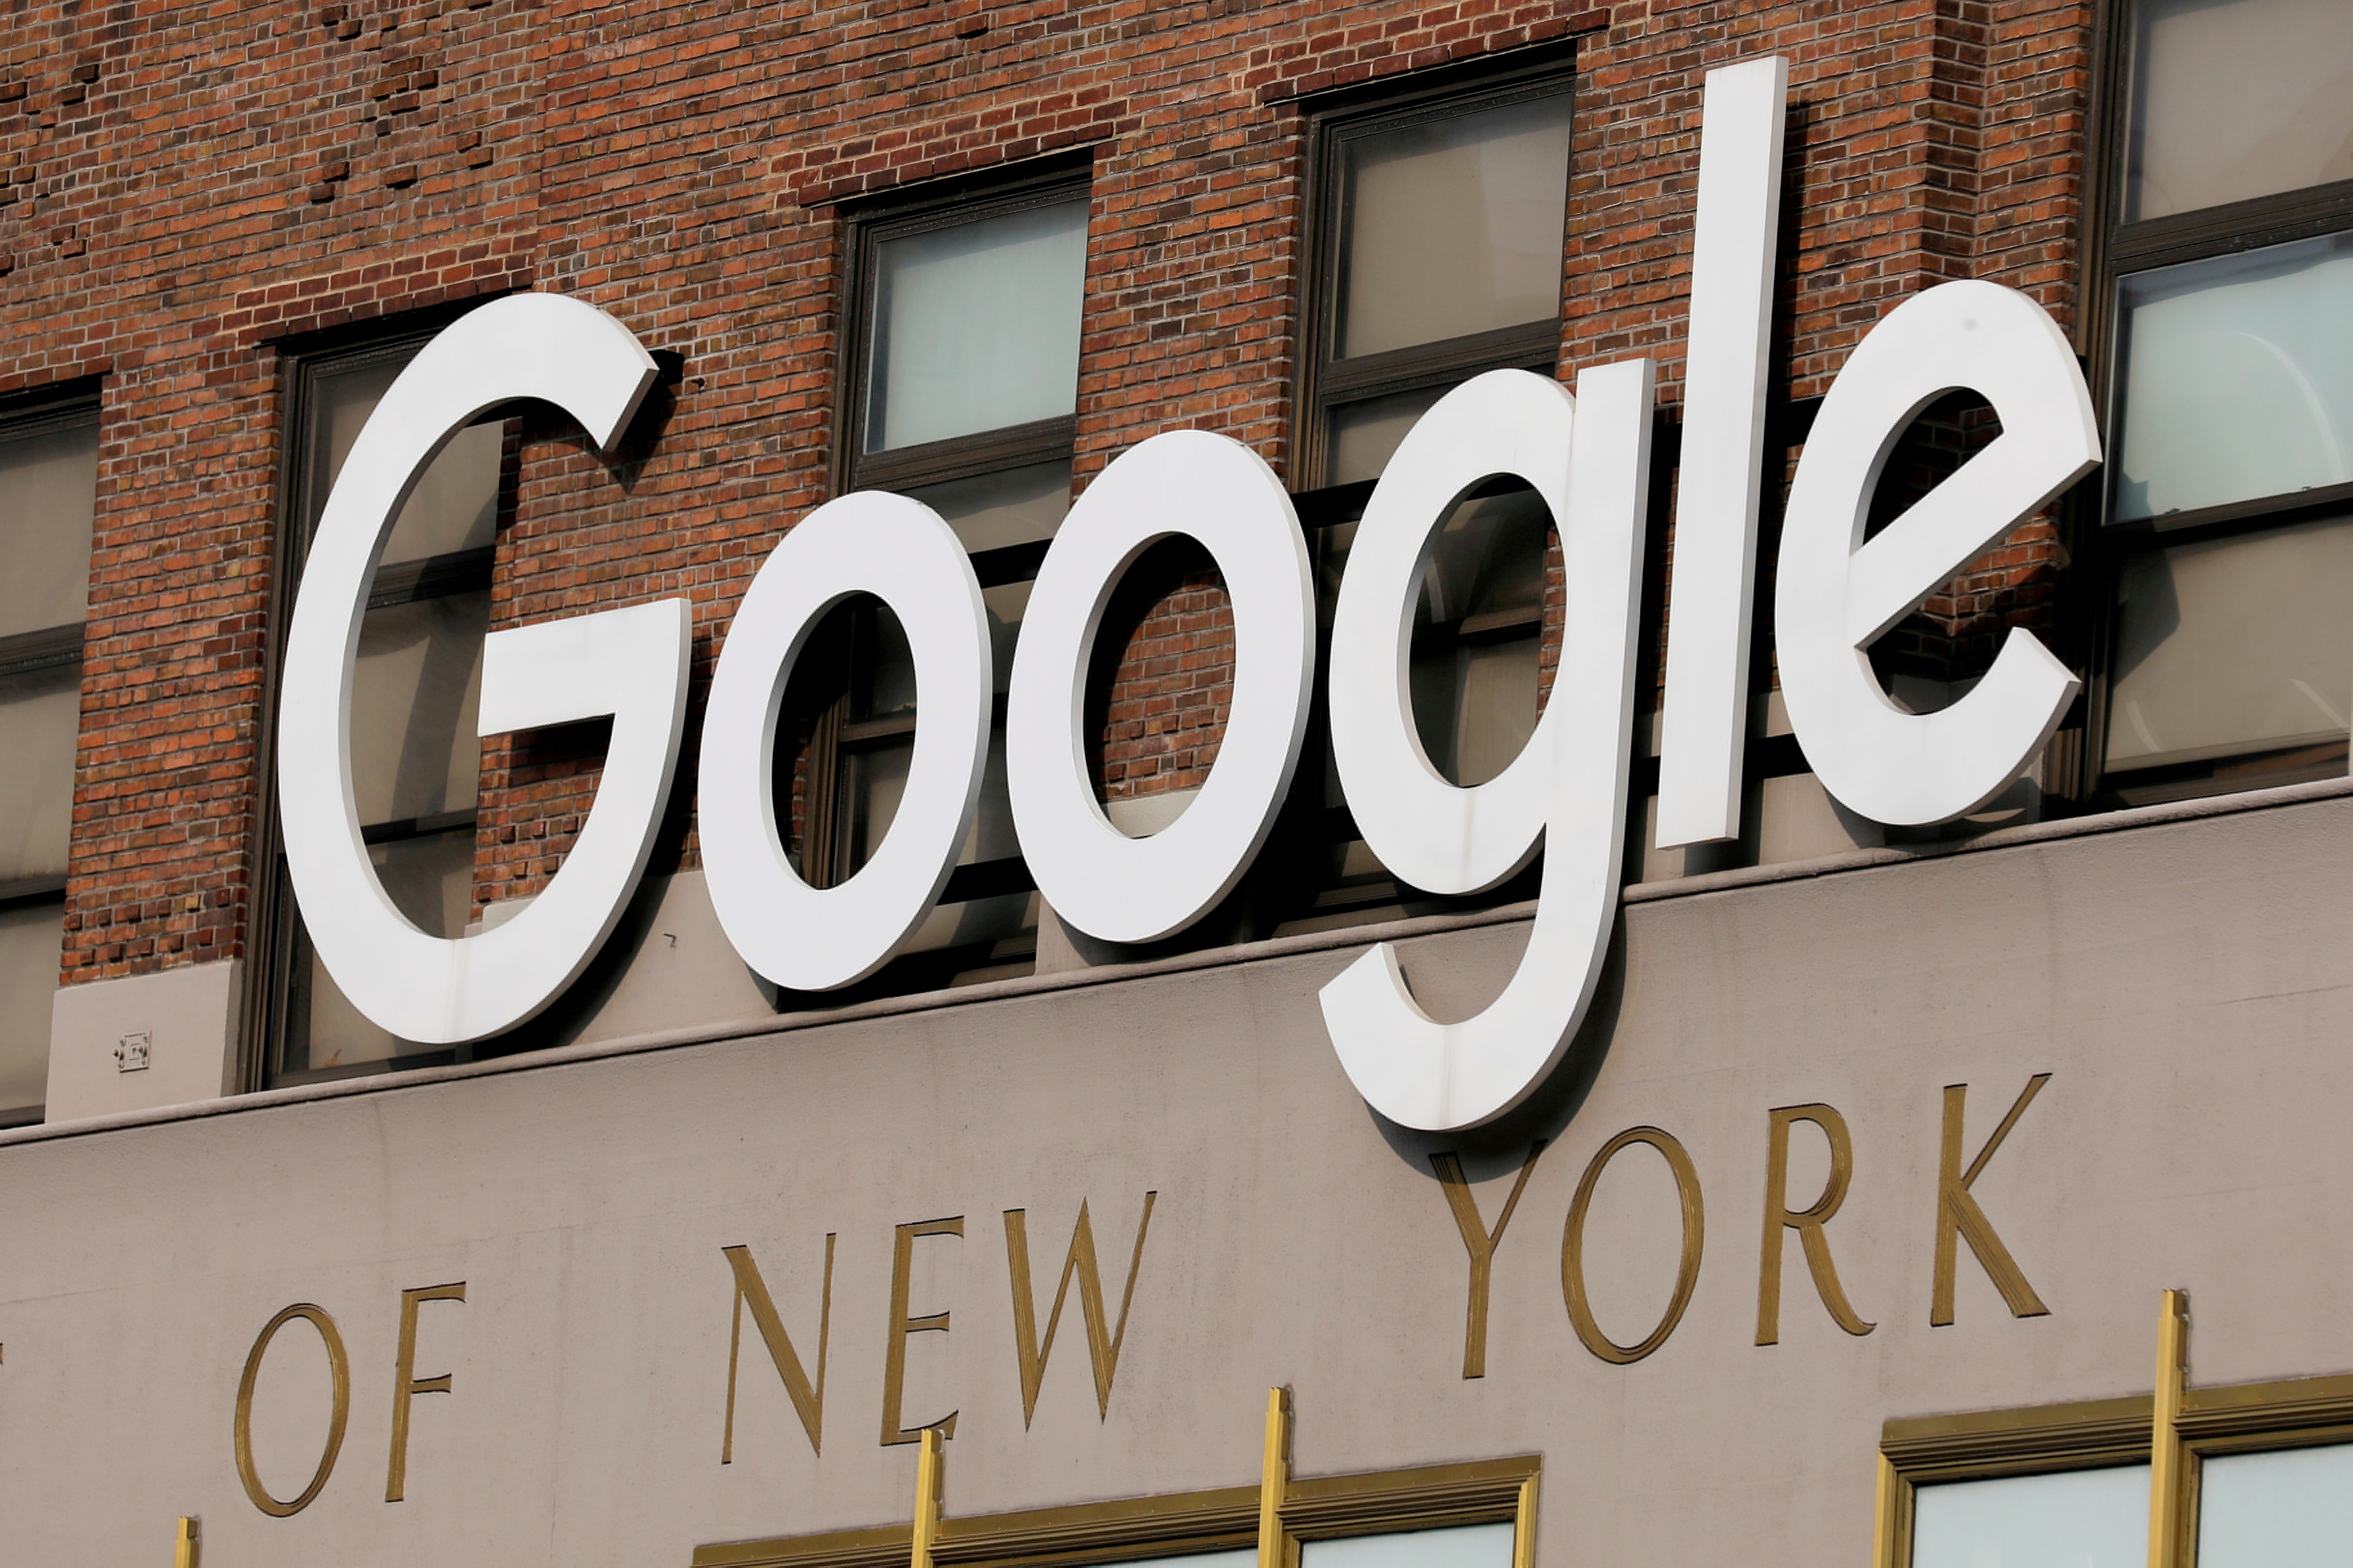 A logo is seen on the New York Google offices. New York City, U.S., July 29, 2021. REUTERS/Andrew Kell